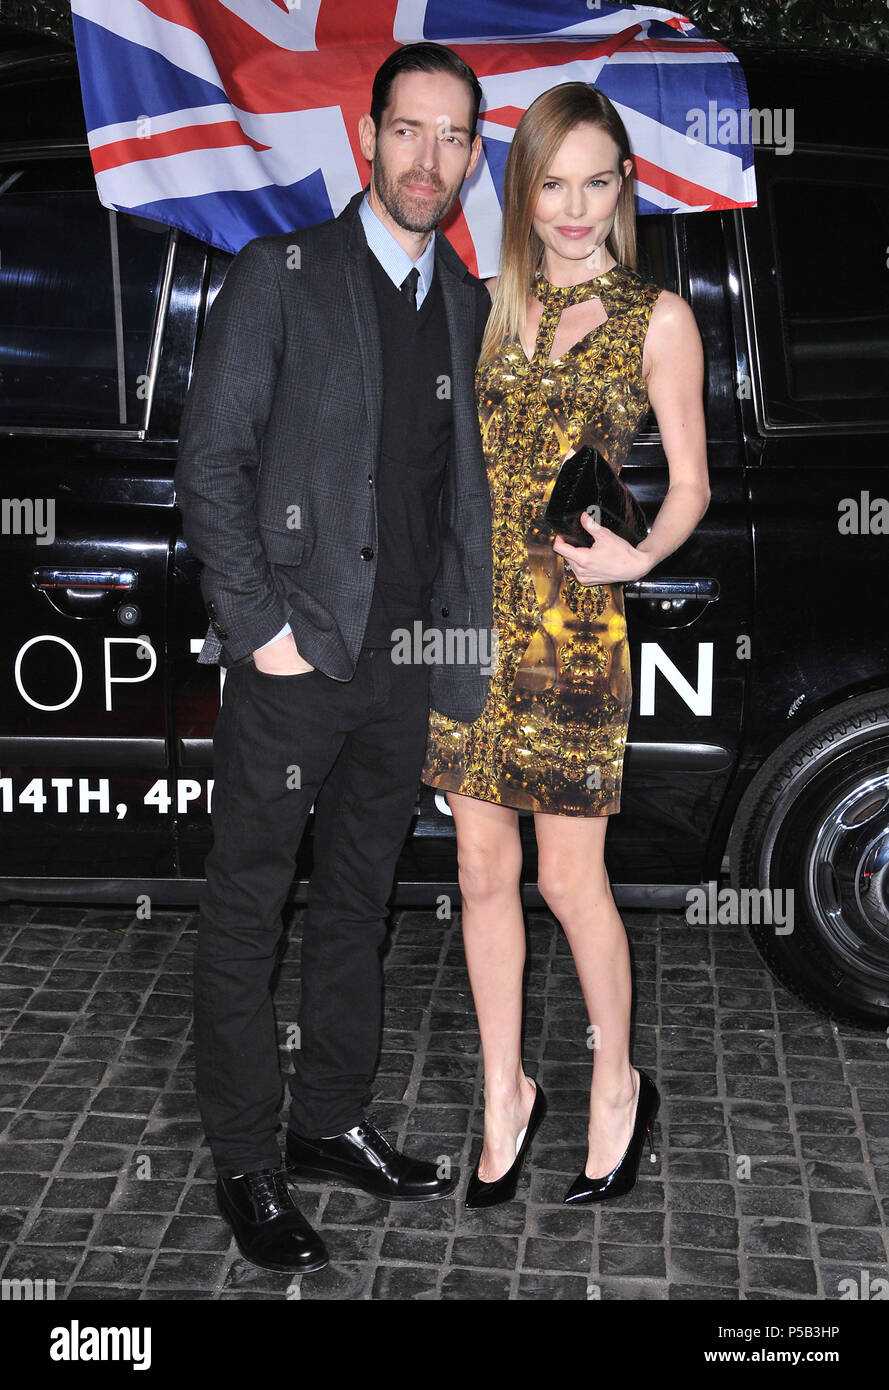 Kate Bosworth and Michael Polish_001 at  the Topshop and Topman Opening in LA at the Cecconi s in West Hollywood.Kate Bosworth and Michael Polish _05 ------------- Red Carpet Event, Vertical, USA, Film Industry, Celebrities,  Photography, Bestof, Arts Culture and Entertainment, Topix Celebrities fashion /  Vertical, Best of, Event in Hollywood Life - California,  Red Carpet and backstage, USA, Film Industry, Celebrities,  movie celebrities, TV celebrities, Music celebrities, Photography, Bestof, Arts Culture and Entertainment,  Topix, vertical,  family from from the year , 2013, inquiry tsuni@ - Stock Image